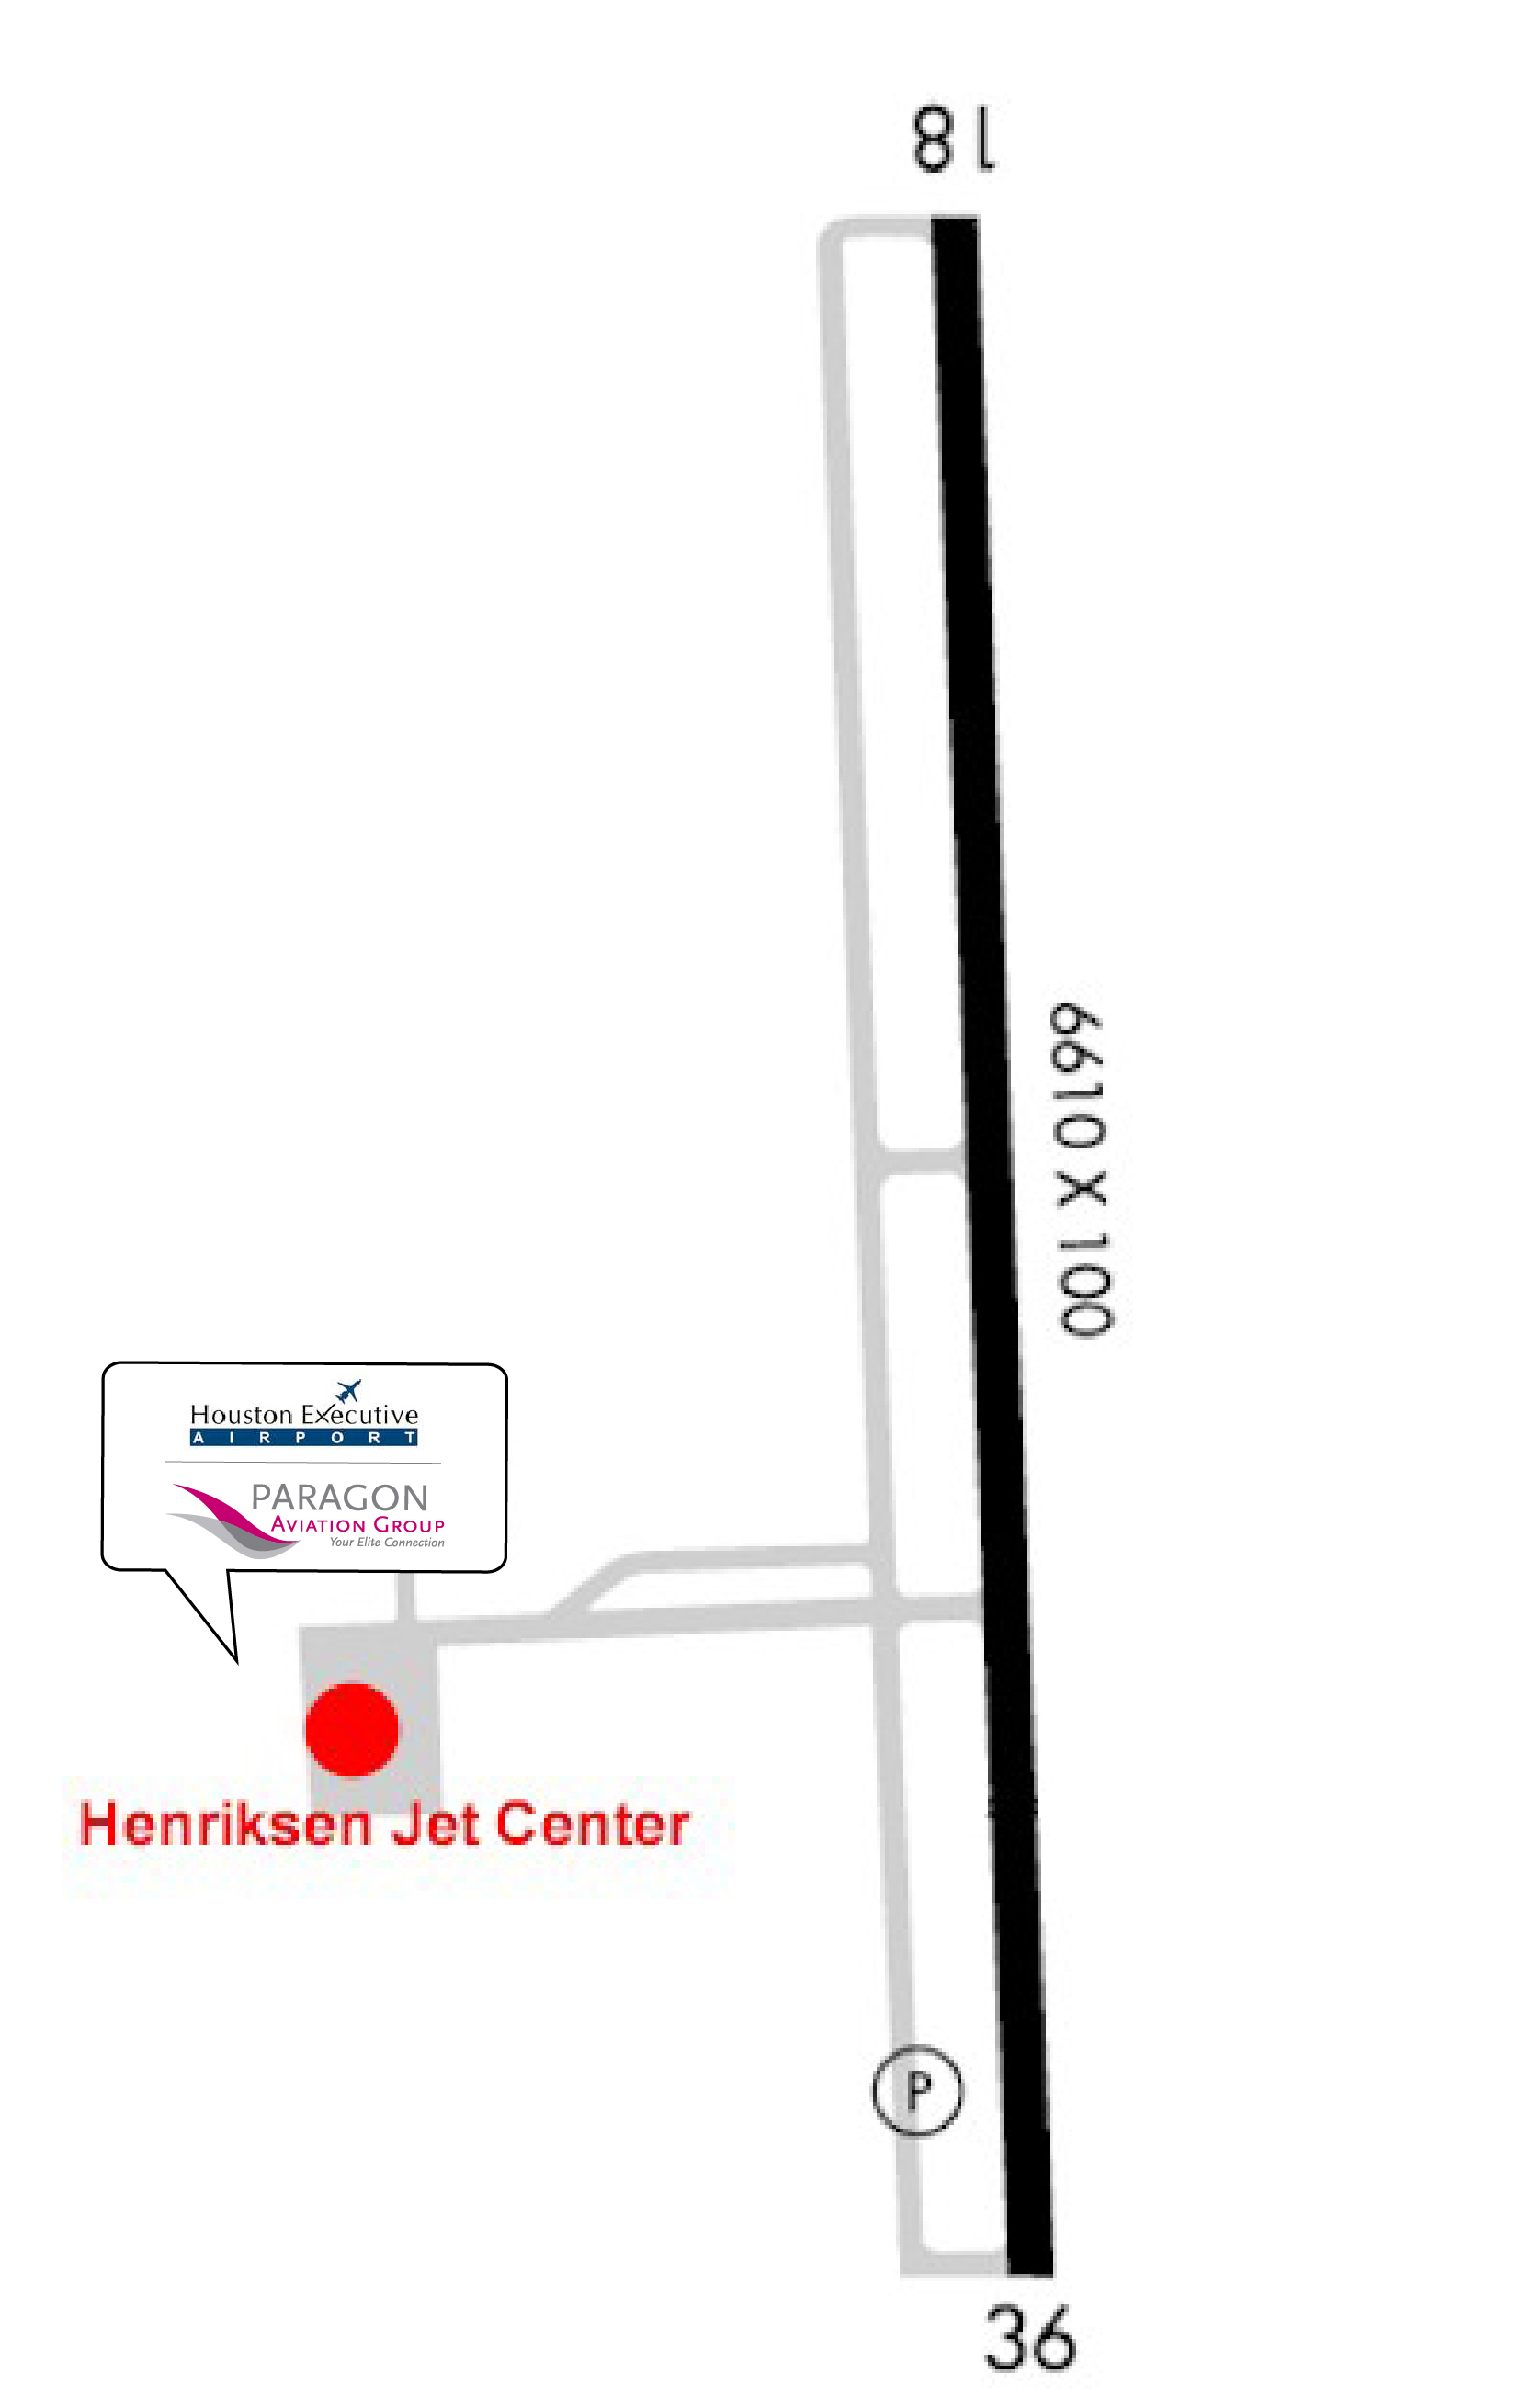 Henriksen Jet Center